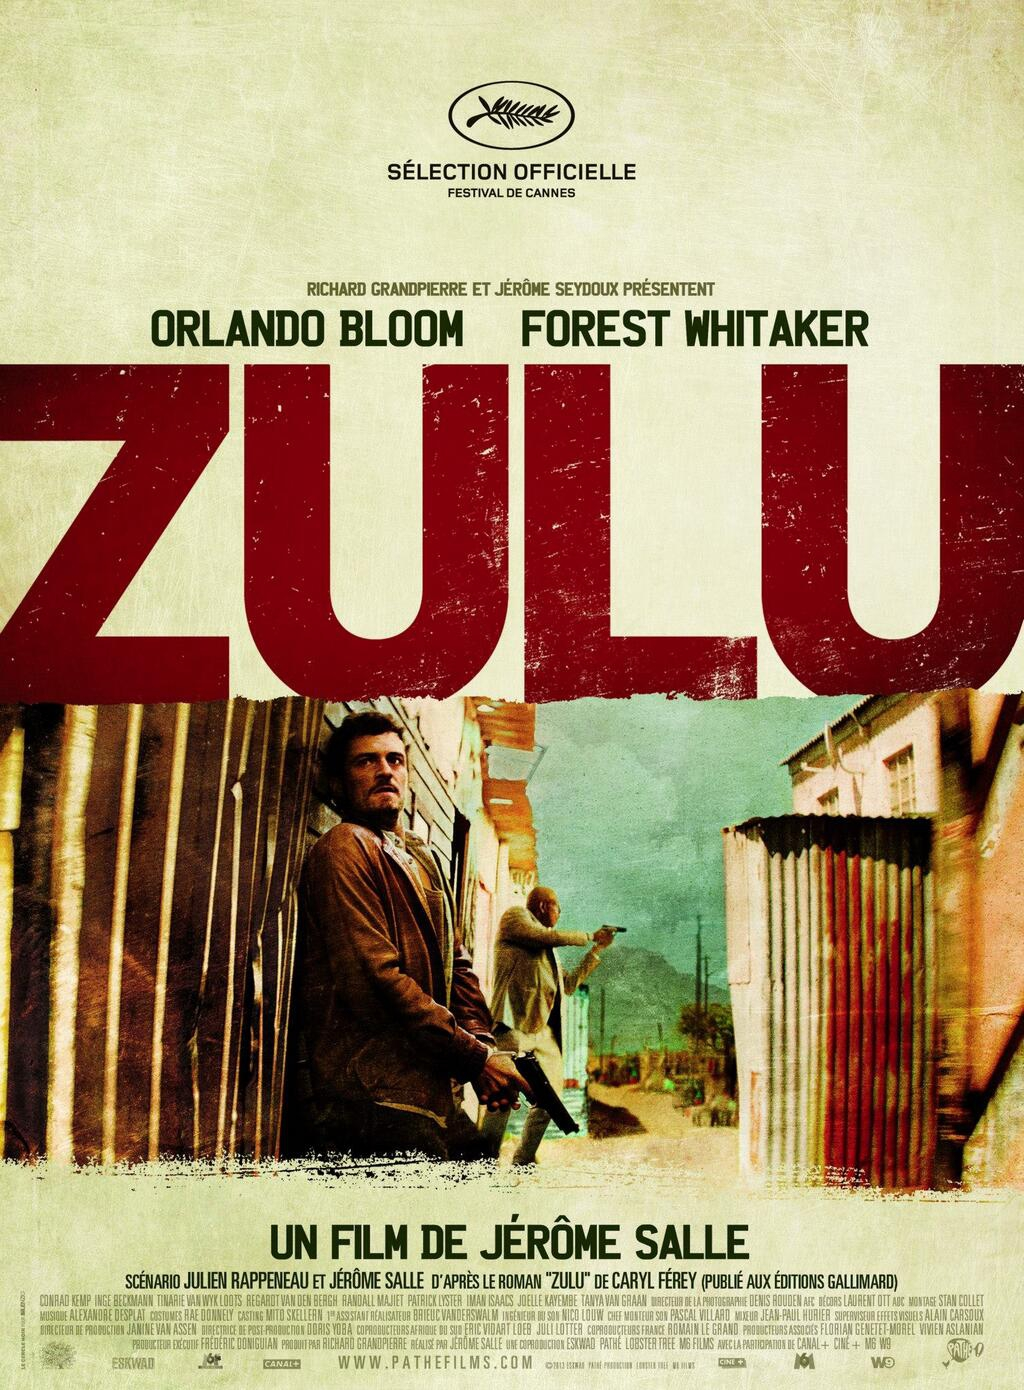 commandant cousteau,cousteau,callypso,cinéma,jérôme salle,l'odyssée,romain duris,pierre nimey,jacques-yves cousteau,mer,aventure,zulu,anthony zimmer